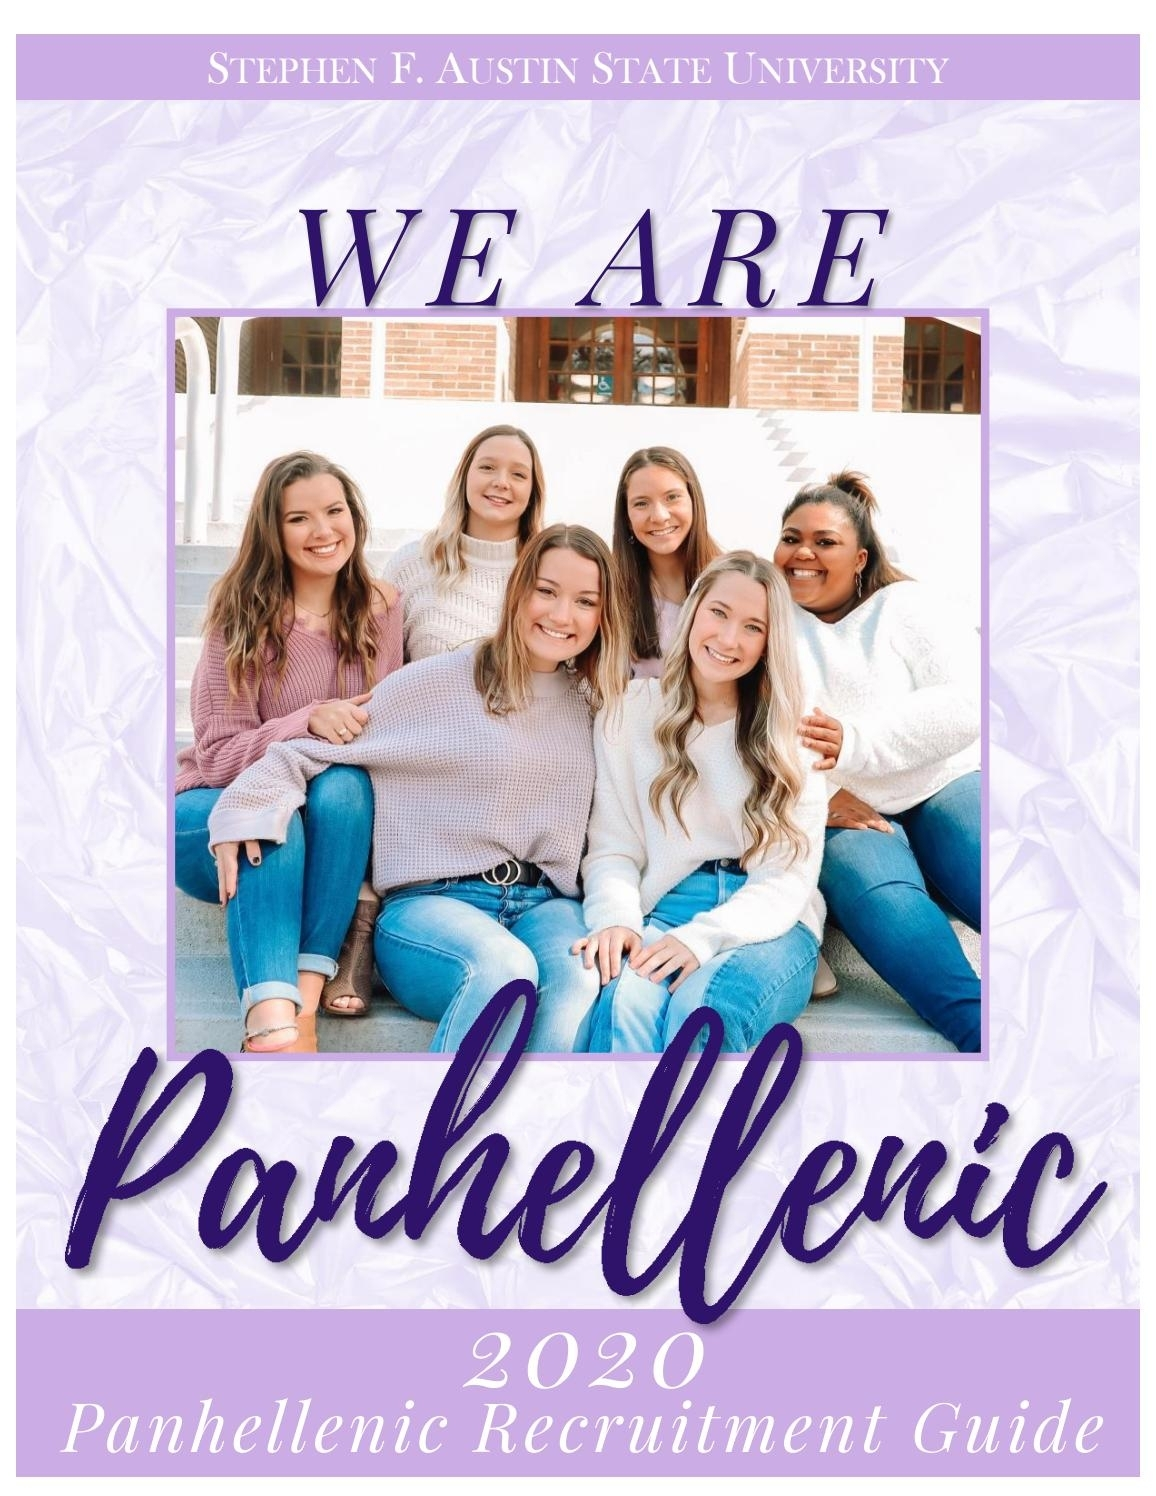 2020 Sfa Sorority Recruitment Bookletsfasu23 - Issuu throughout Stephen F Austin Spring 2020